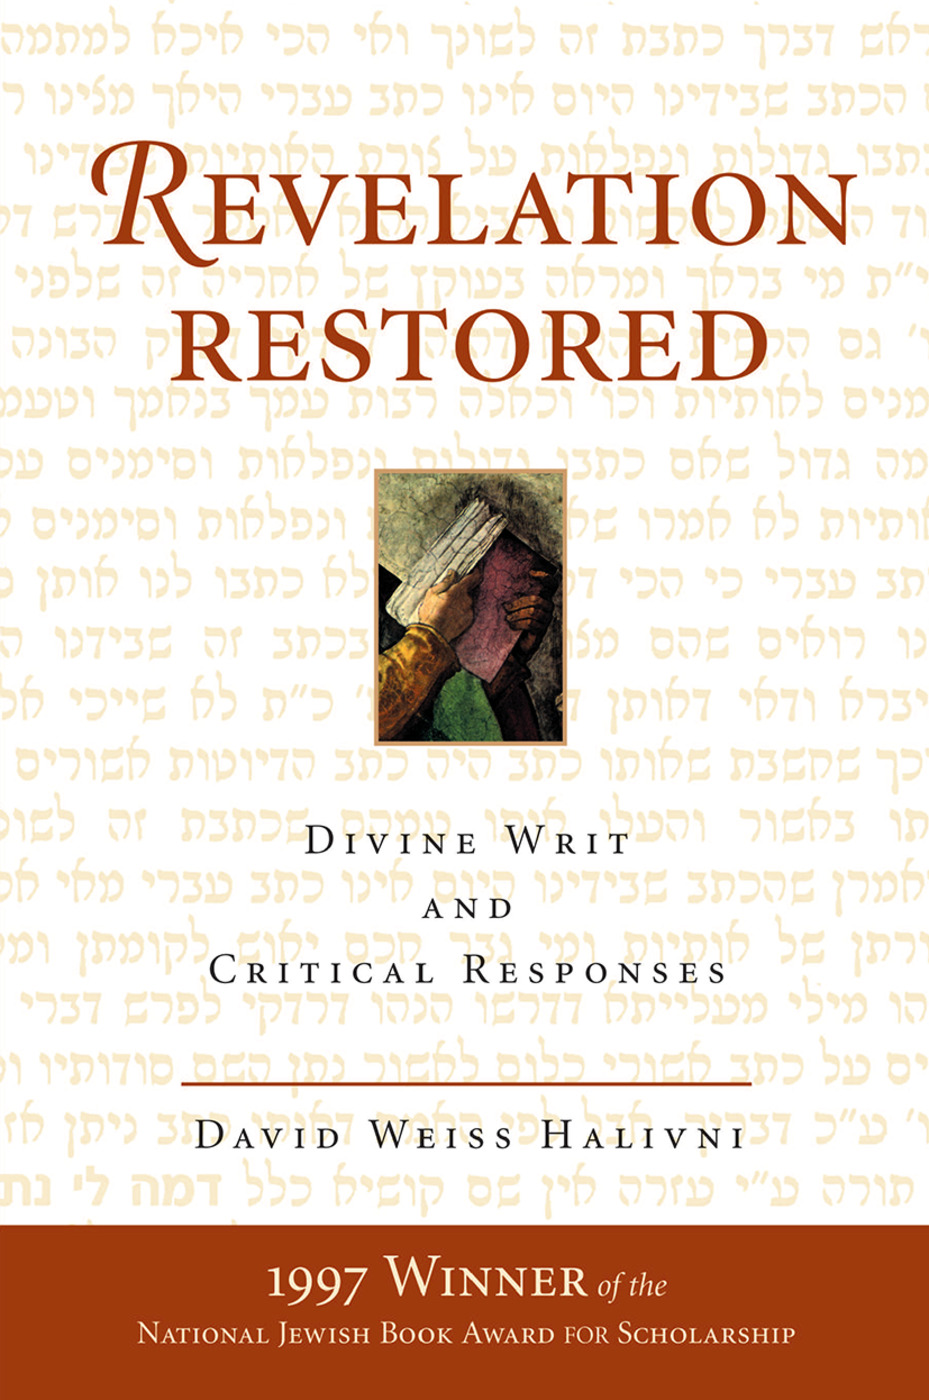 Revelation Restored: Divine Writ And Critical Responses book cover